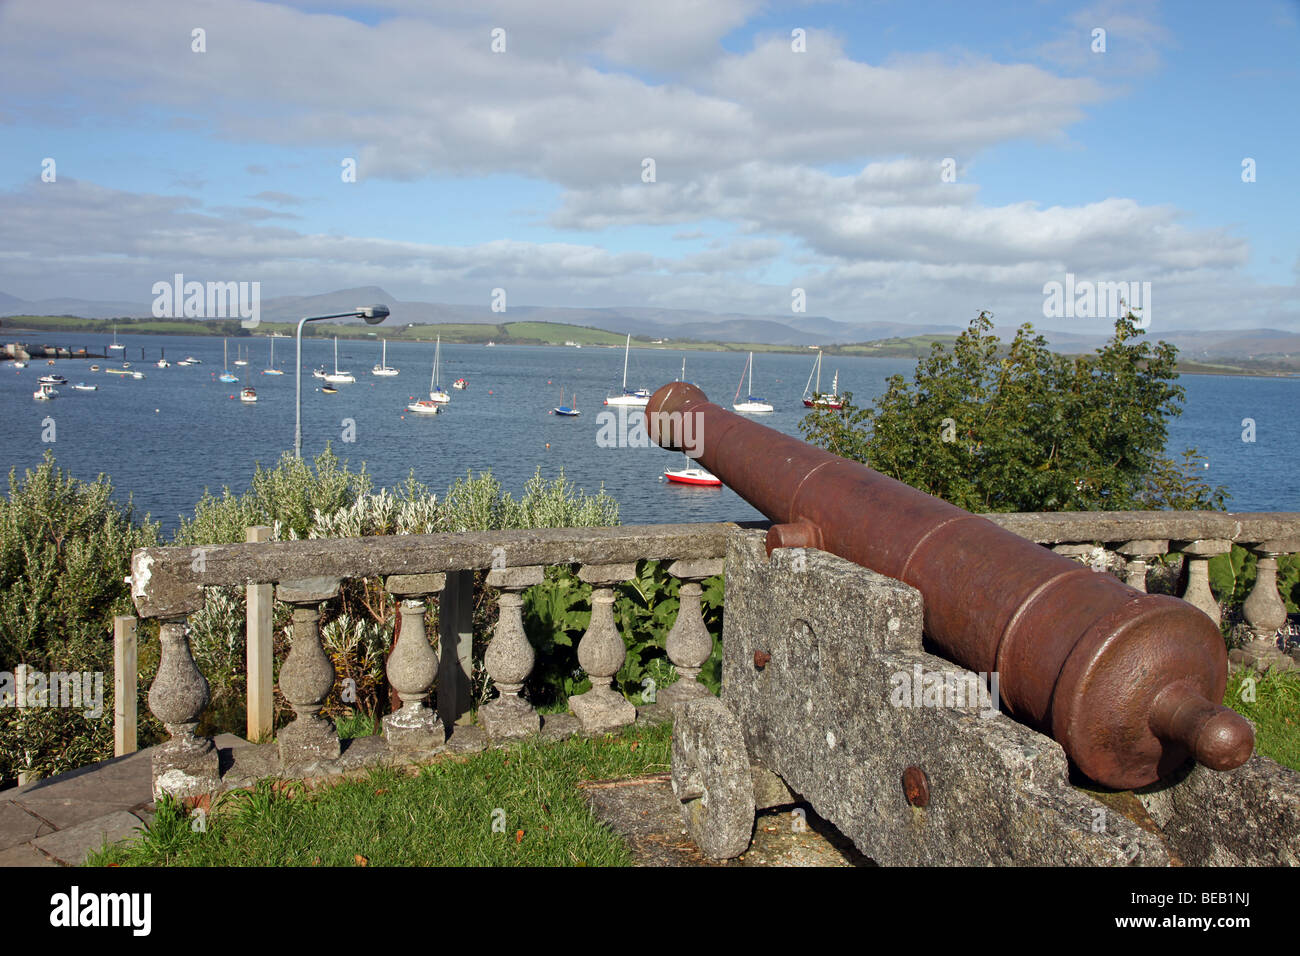 Bantry House Cannon, Bantry Bay, West Cork, Ireland - Stock Image